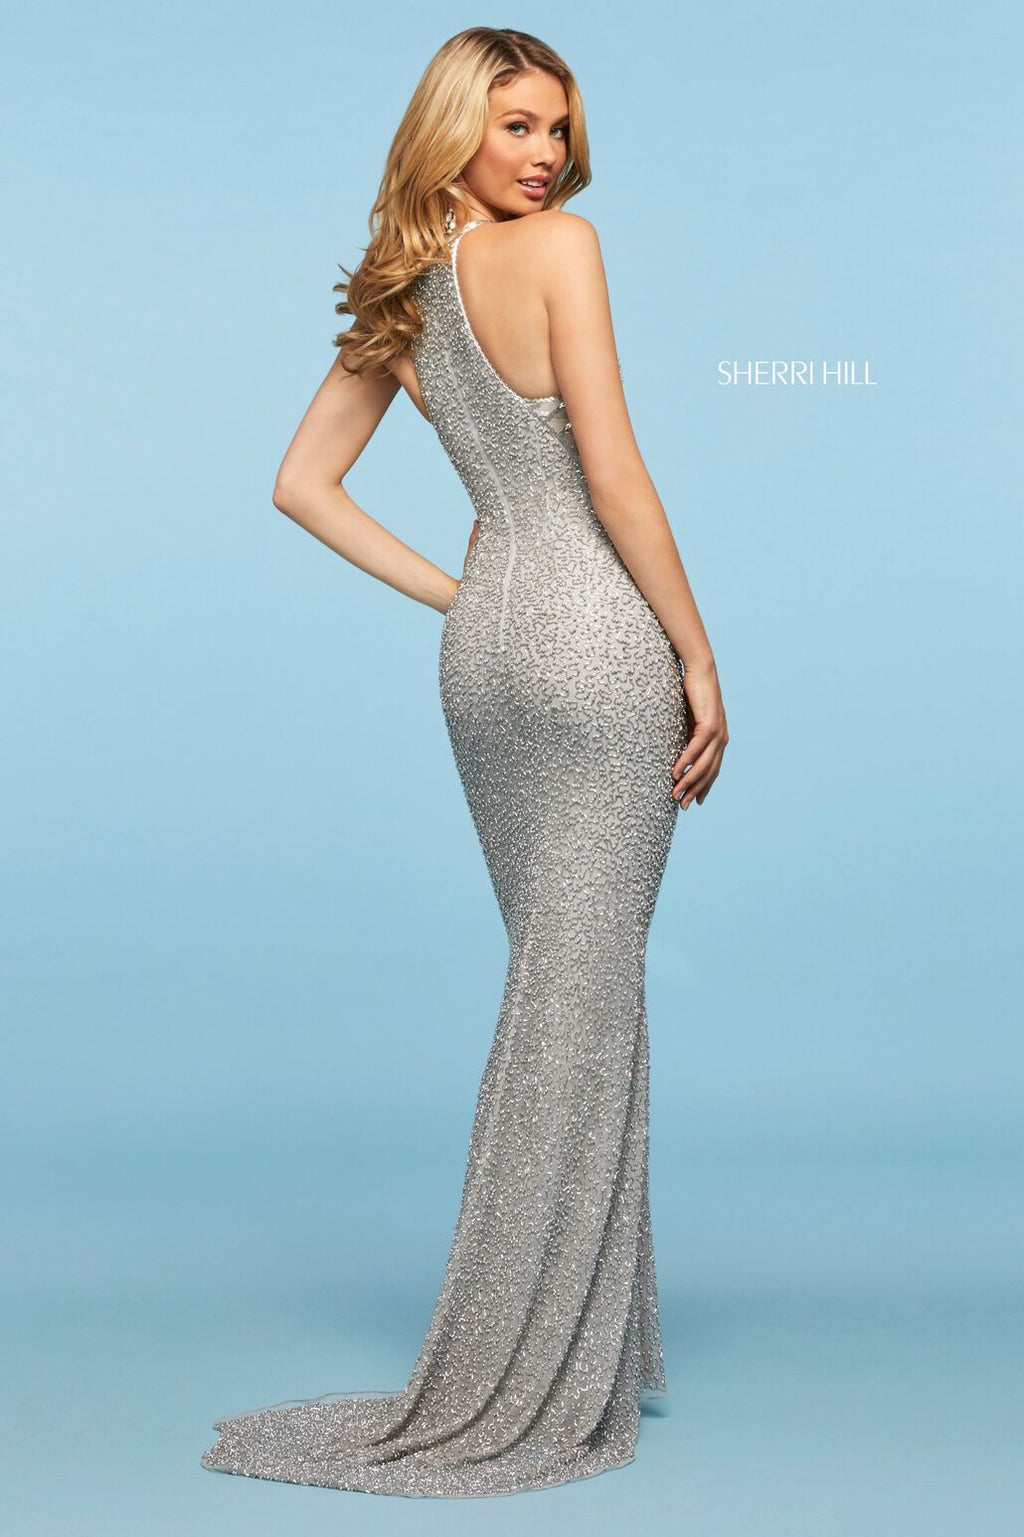 This Sherri Hill 53440 fitted gown in silver features a high cut halter style neckline and beading throughout.